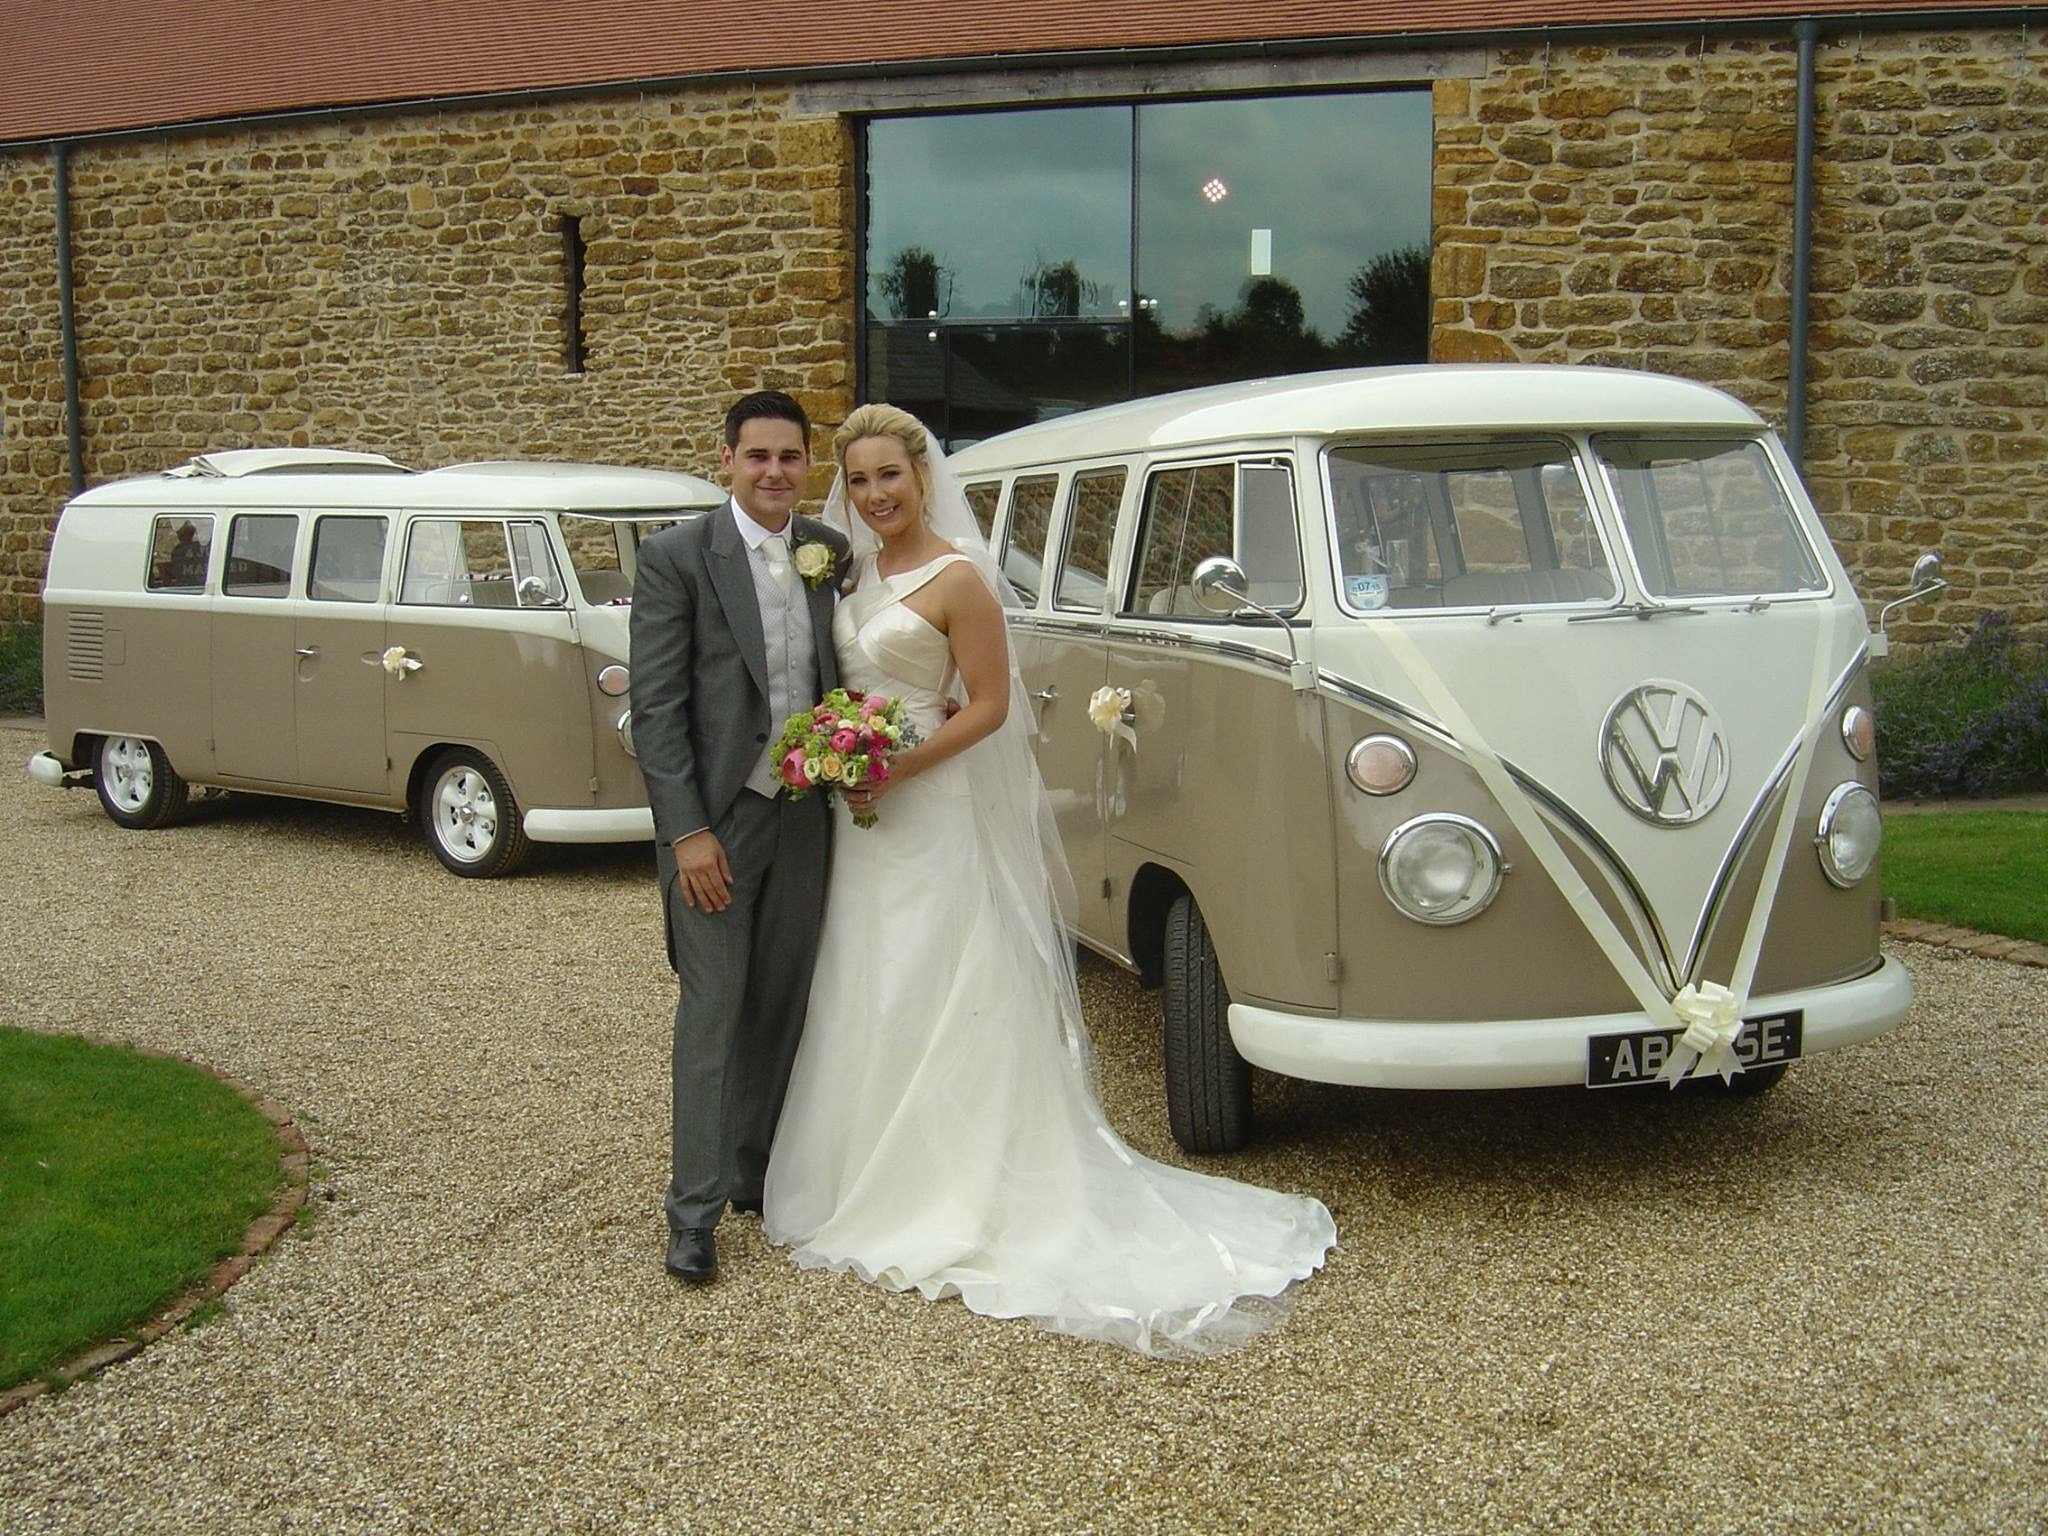 Volkswagen wedding car hire - Special Day Cars